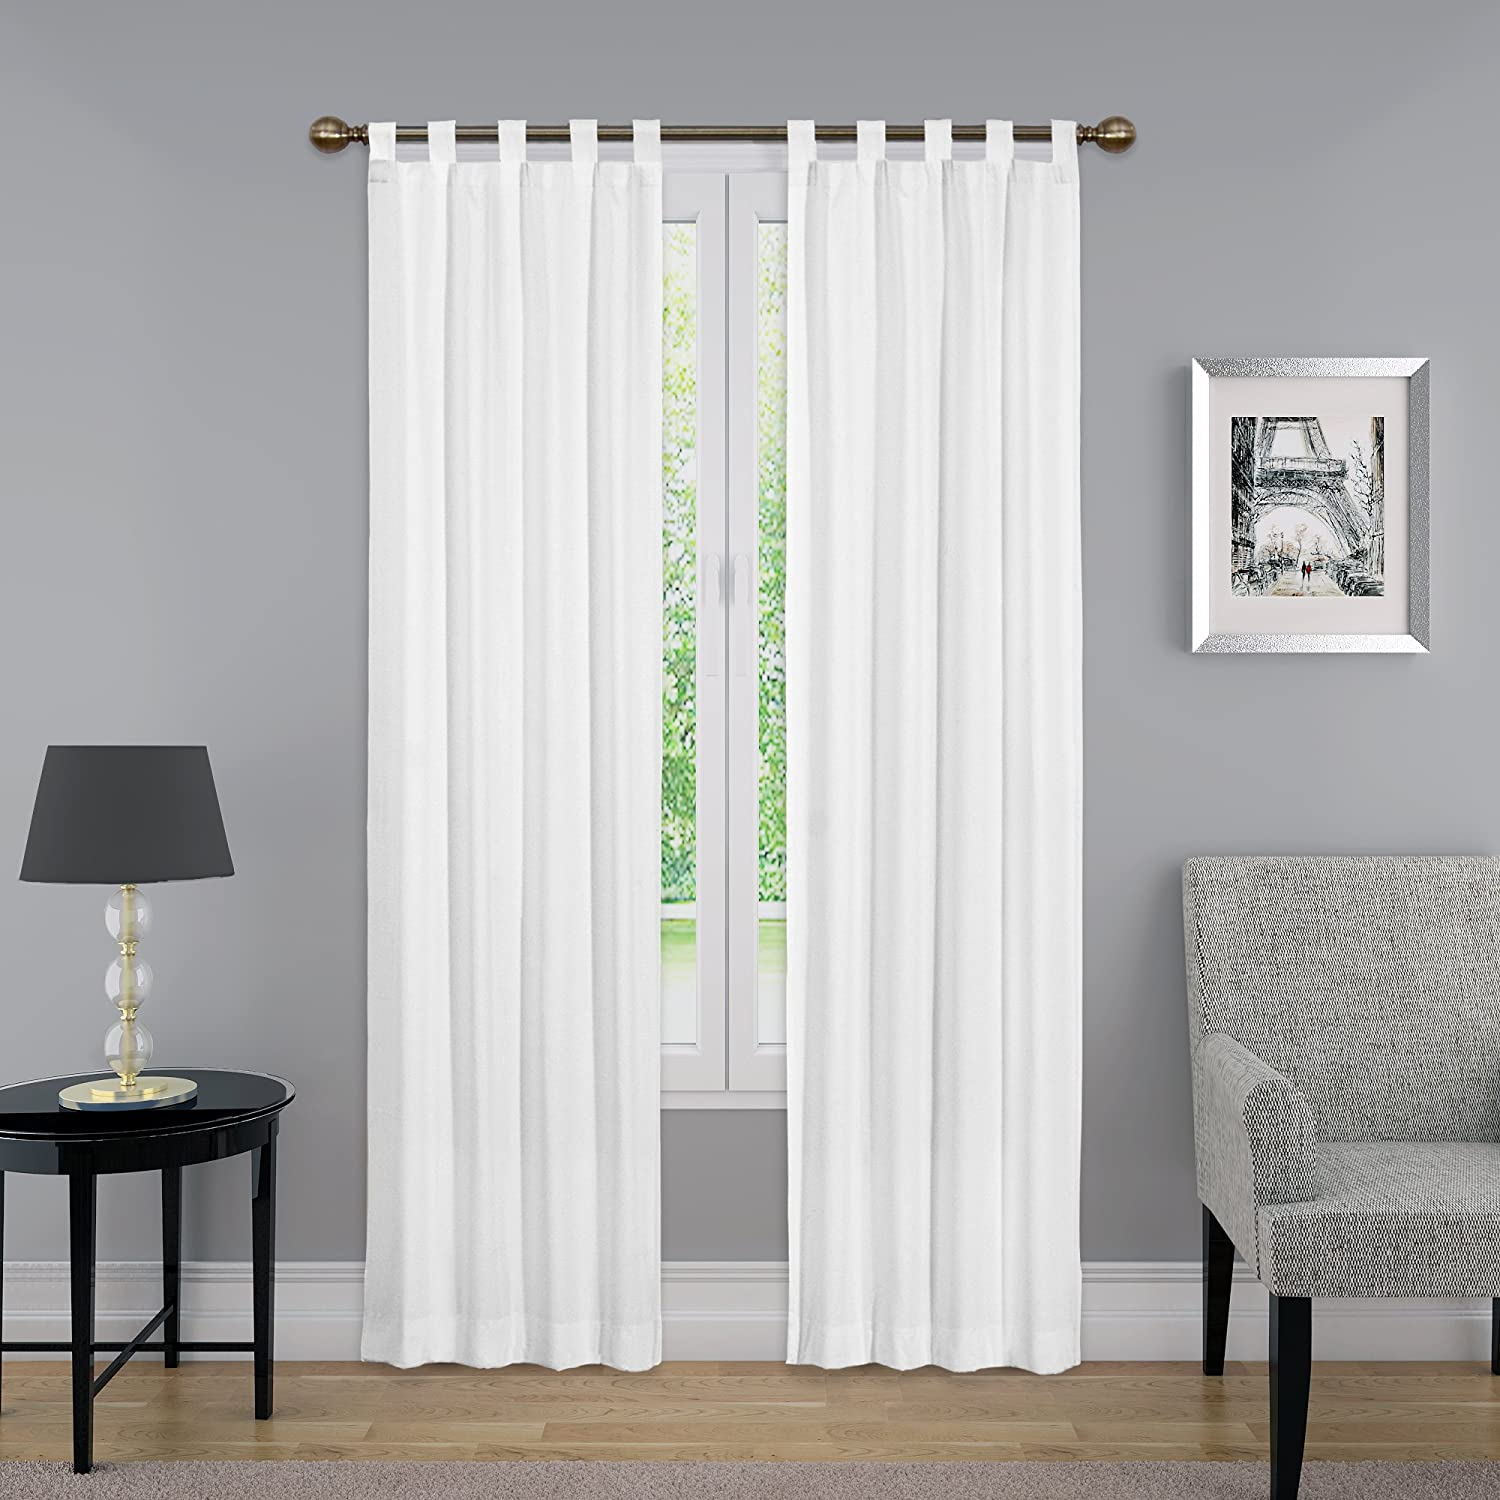 "Pairs to Go Montana (Colorado) Tab Top Curtains for Living Room, Double Panel, 30"" x 63"", White"